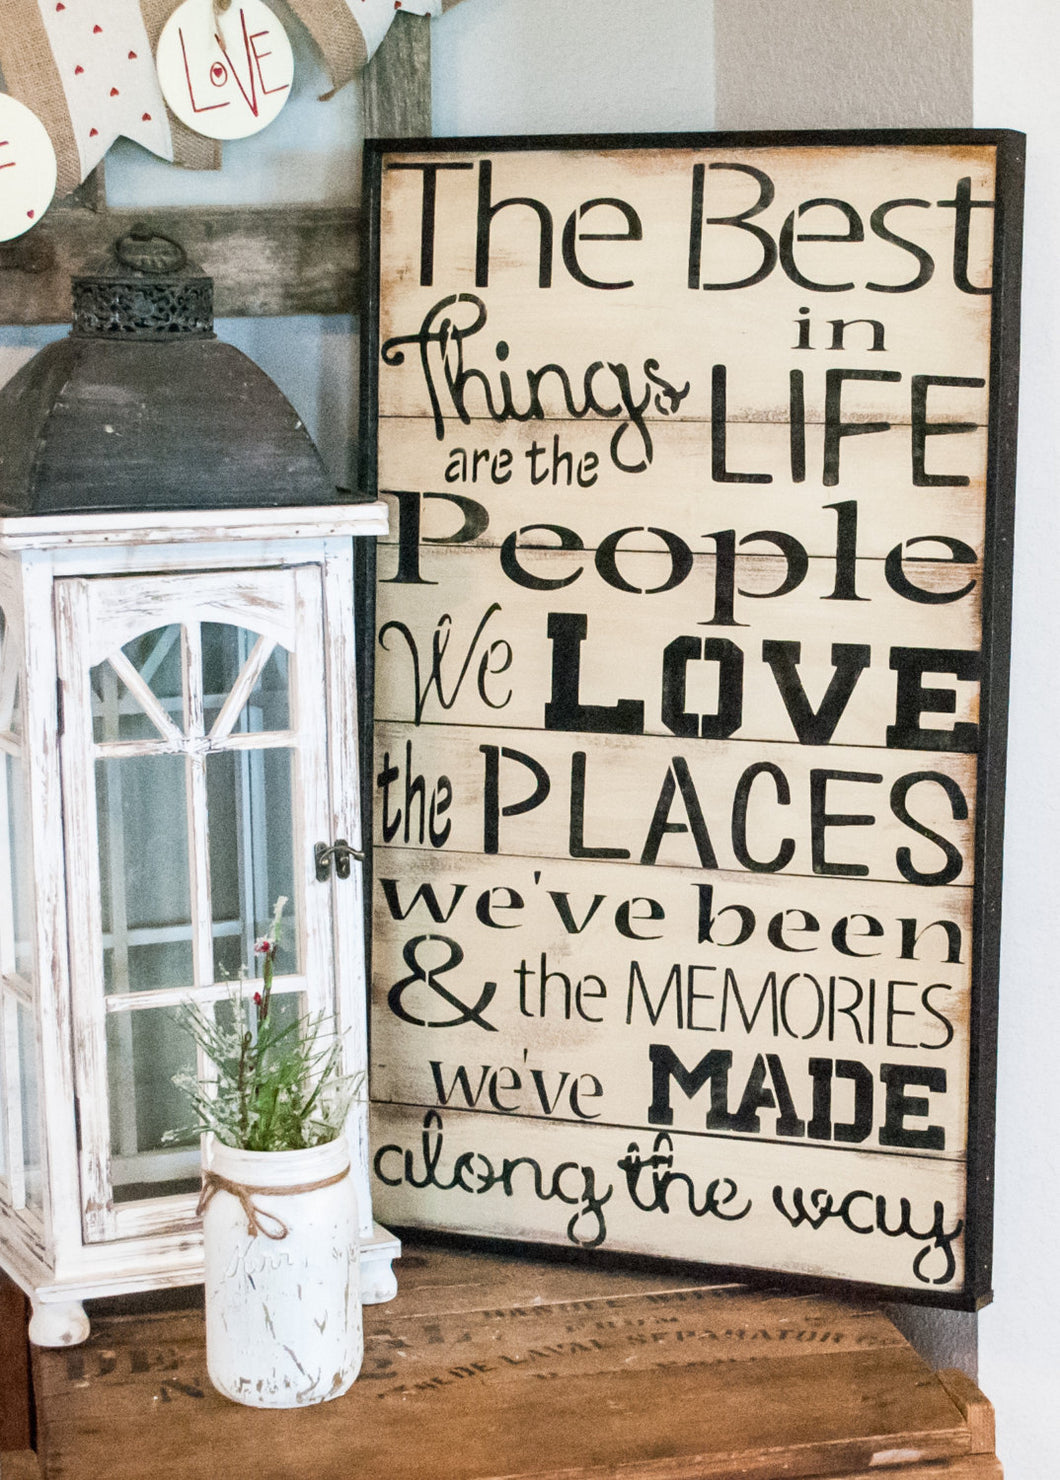 The best things in life rustic Wood Sign - Wood Sign - Rustic Home Decor - Family Sign - Farmhouse sign - Large Wall Art -Wood wall hanging